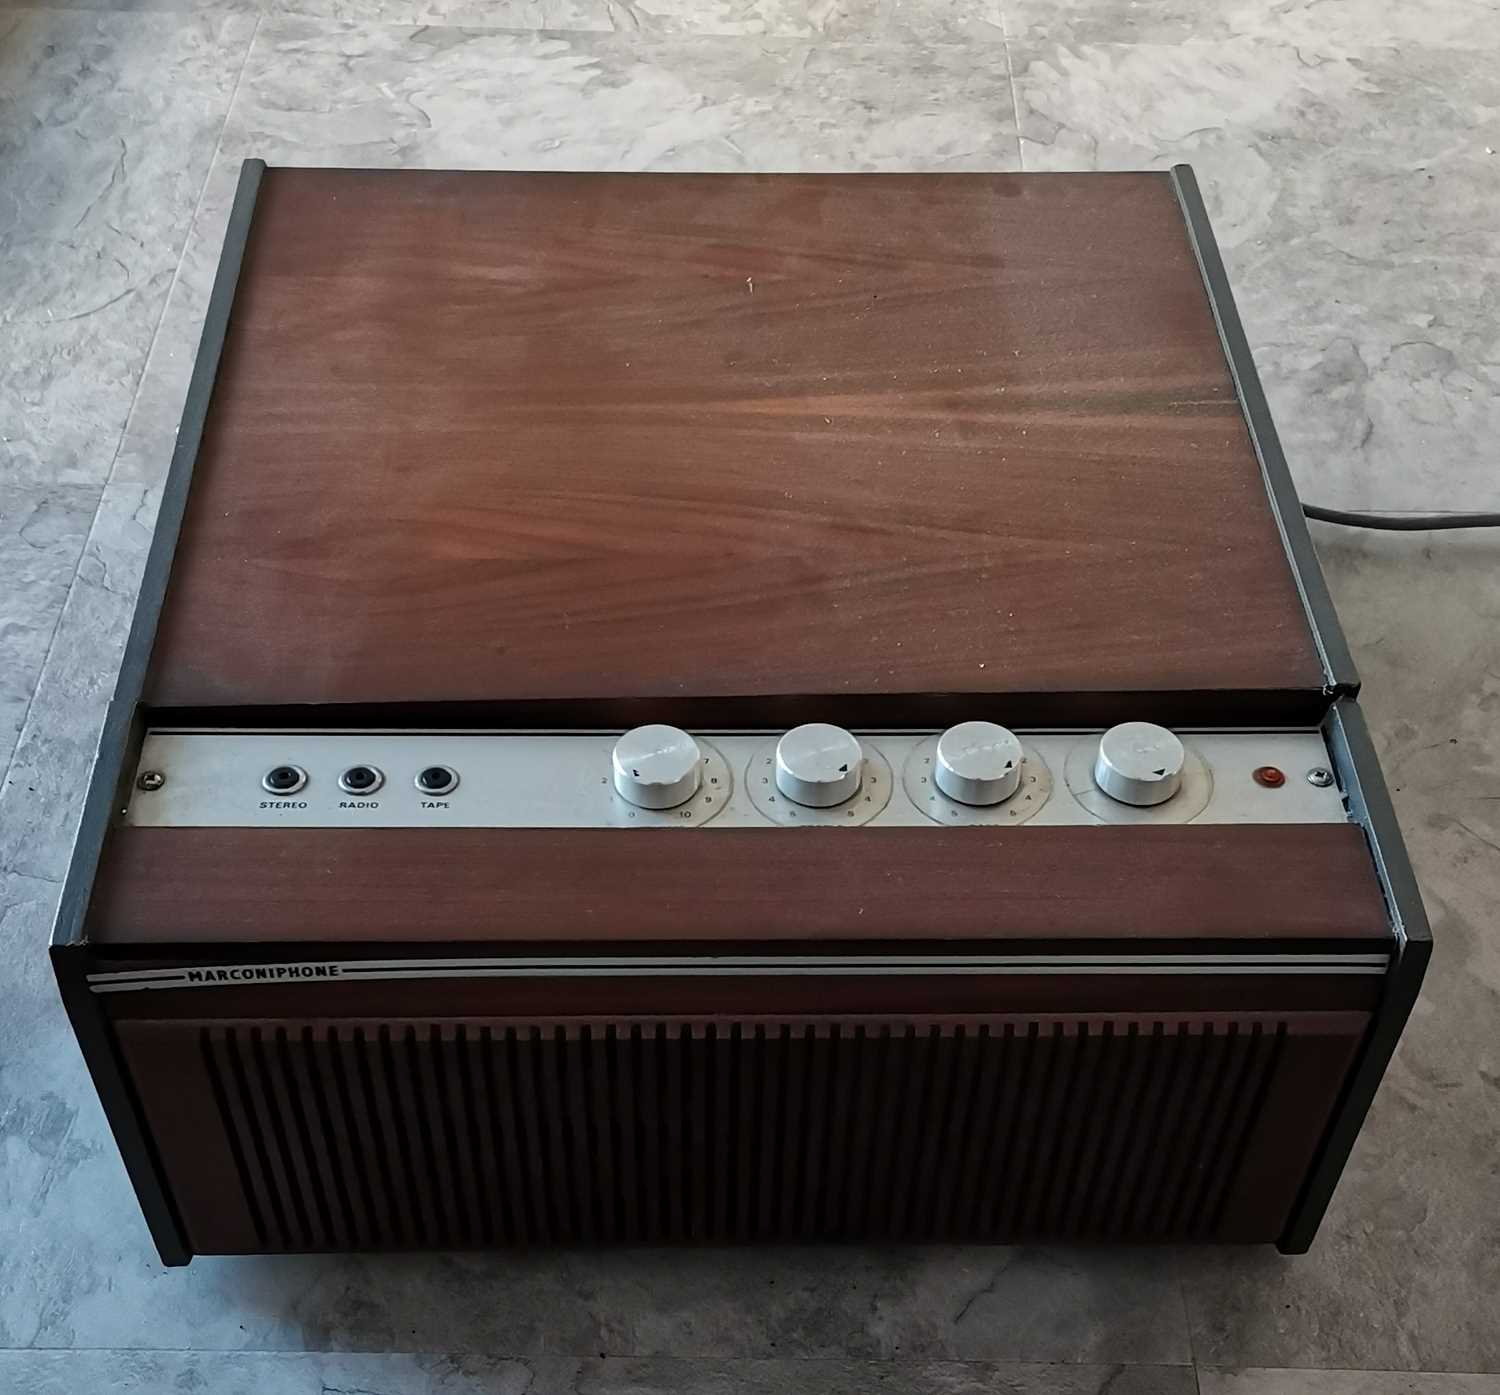 Lot 28 - A vintage wooden Marconiphone record player.